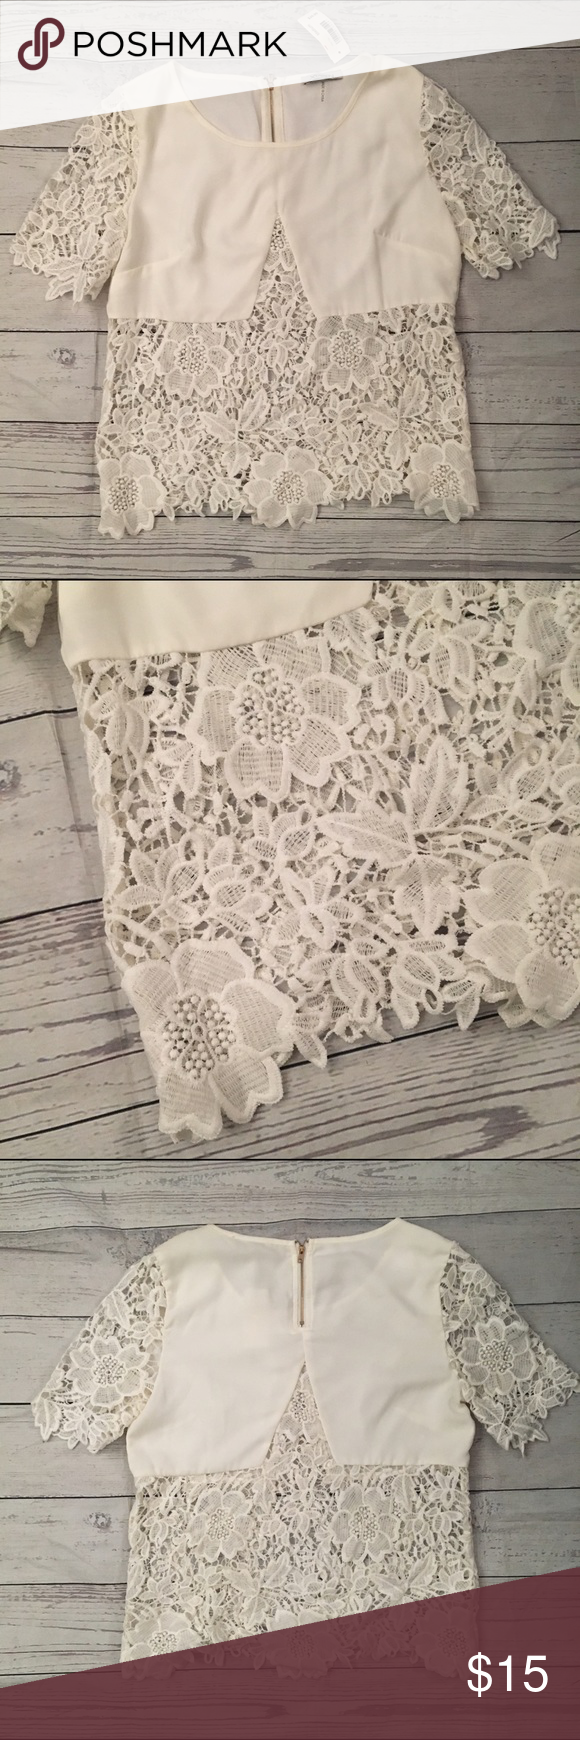 White lace top This top is so cute and sexy! Looks beautiful with a high waisted skirt or skinny jeans. Sheer lace from and back. NWT. xTaren Tops Blouses